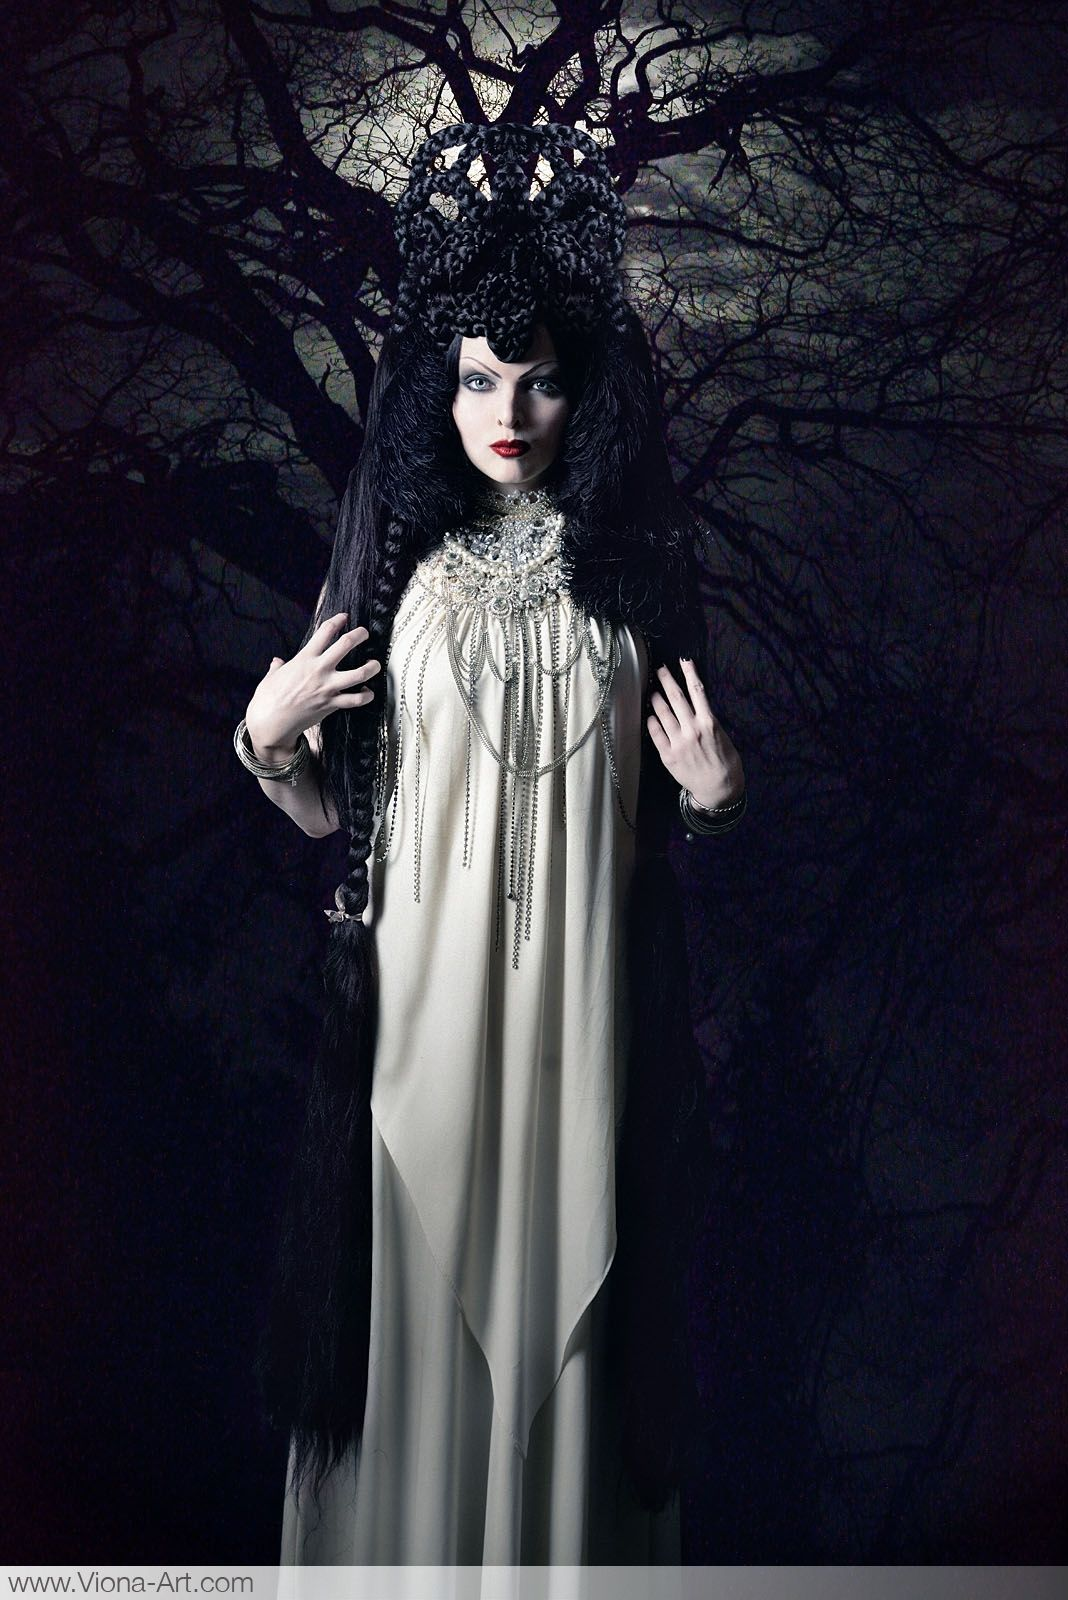 Viona-Art | My gothic pictures